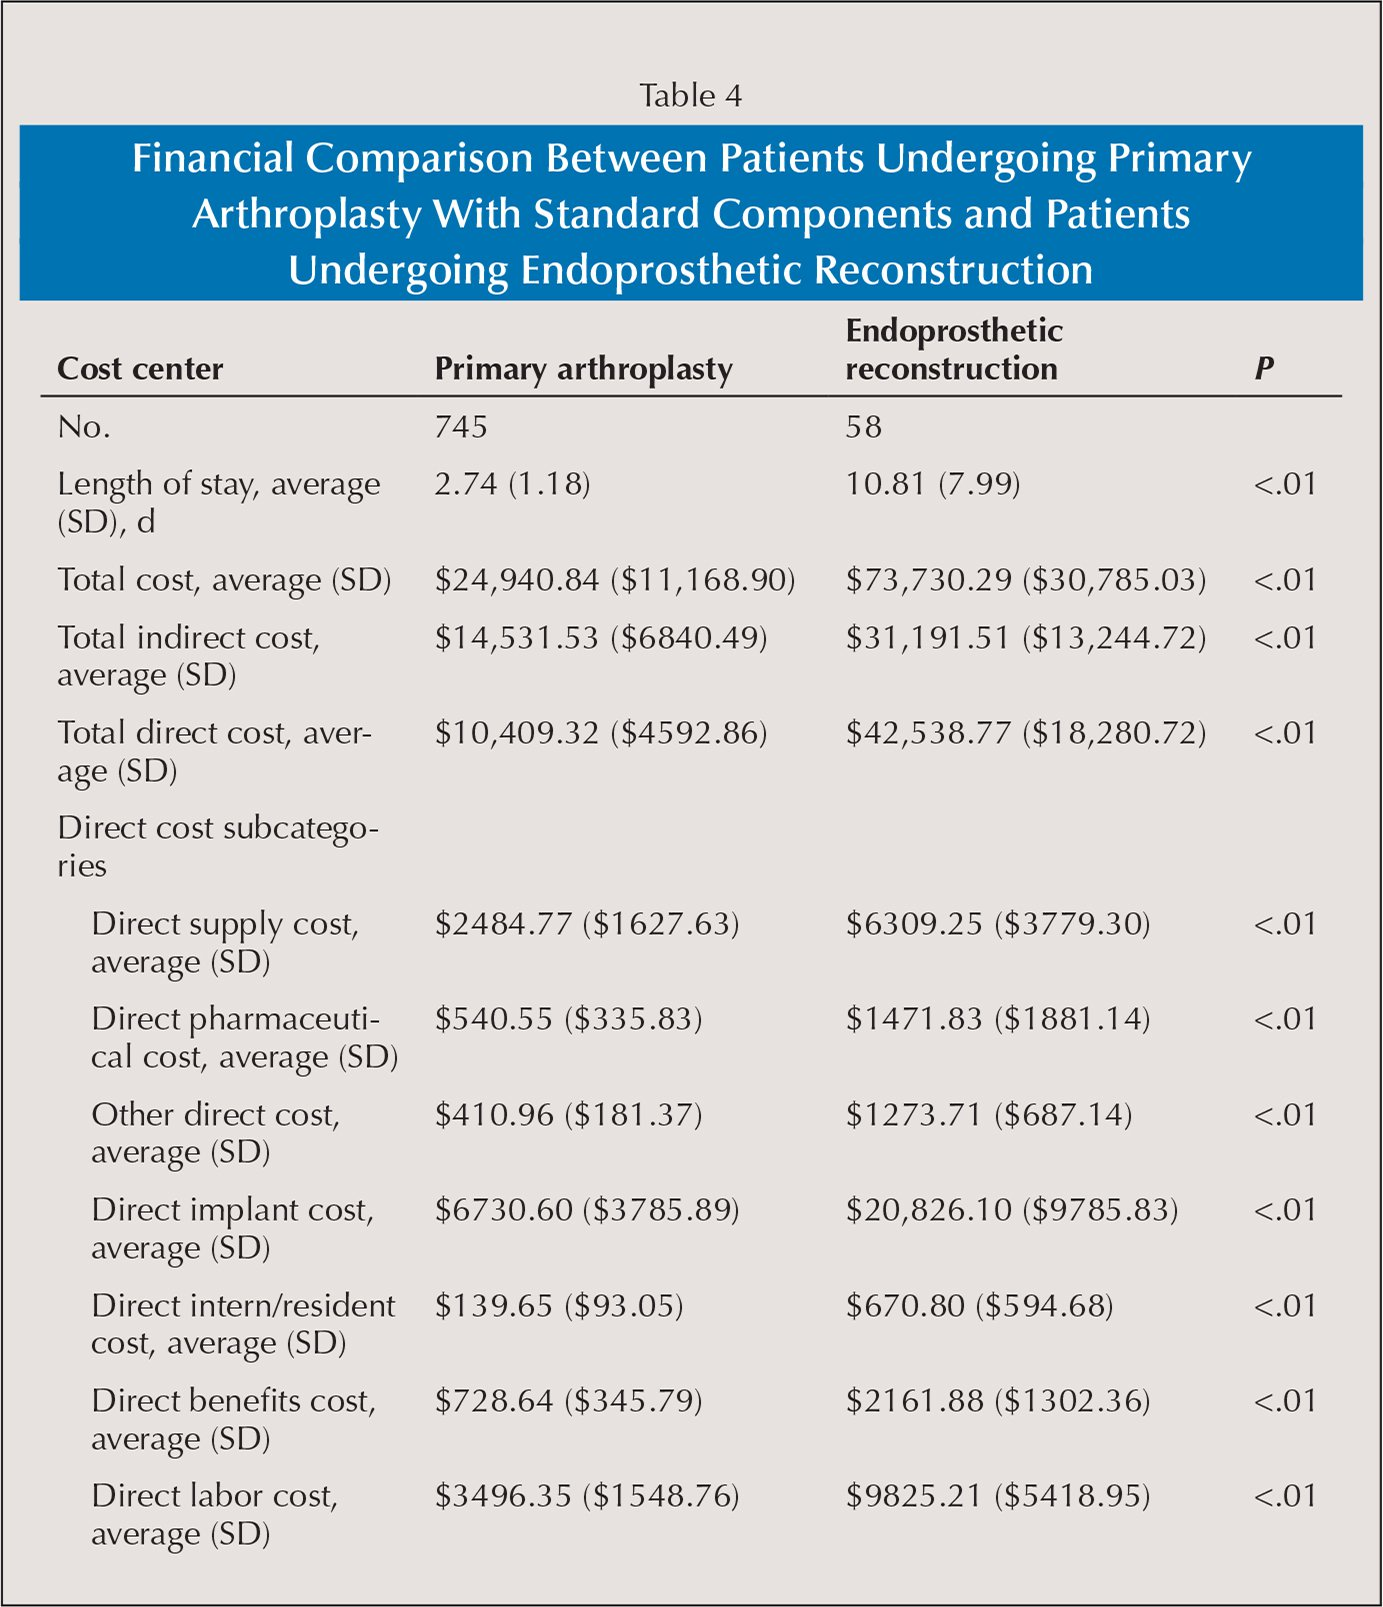 Financial Comparison Between Patients Undergoing Primary Arthroplasty With Standard Components and Patients Undergoing Endoprosthetic Reconstruction